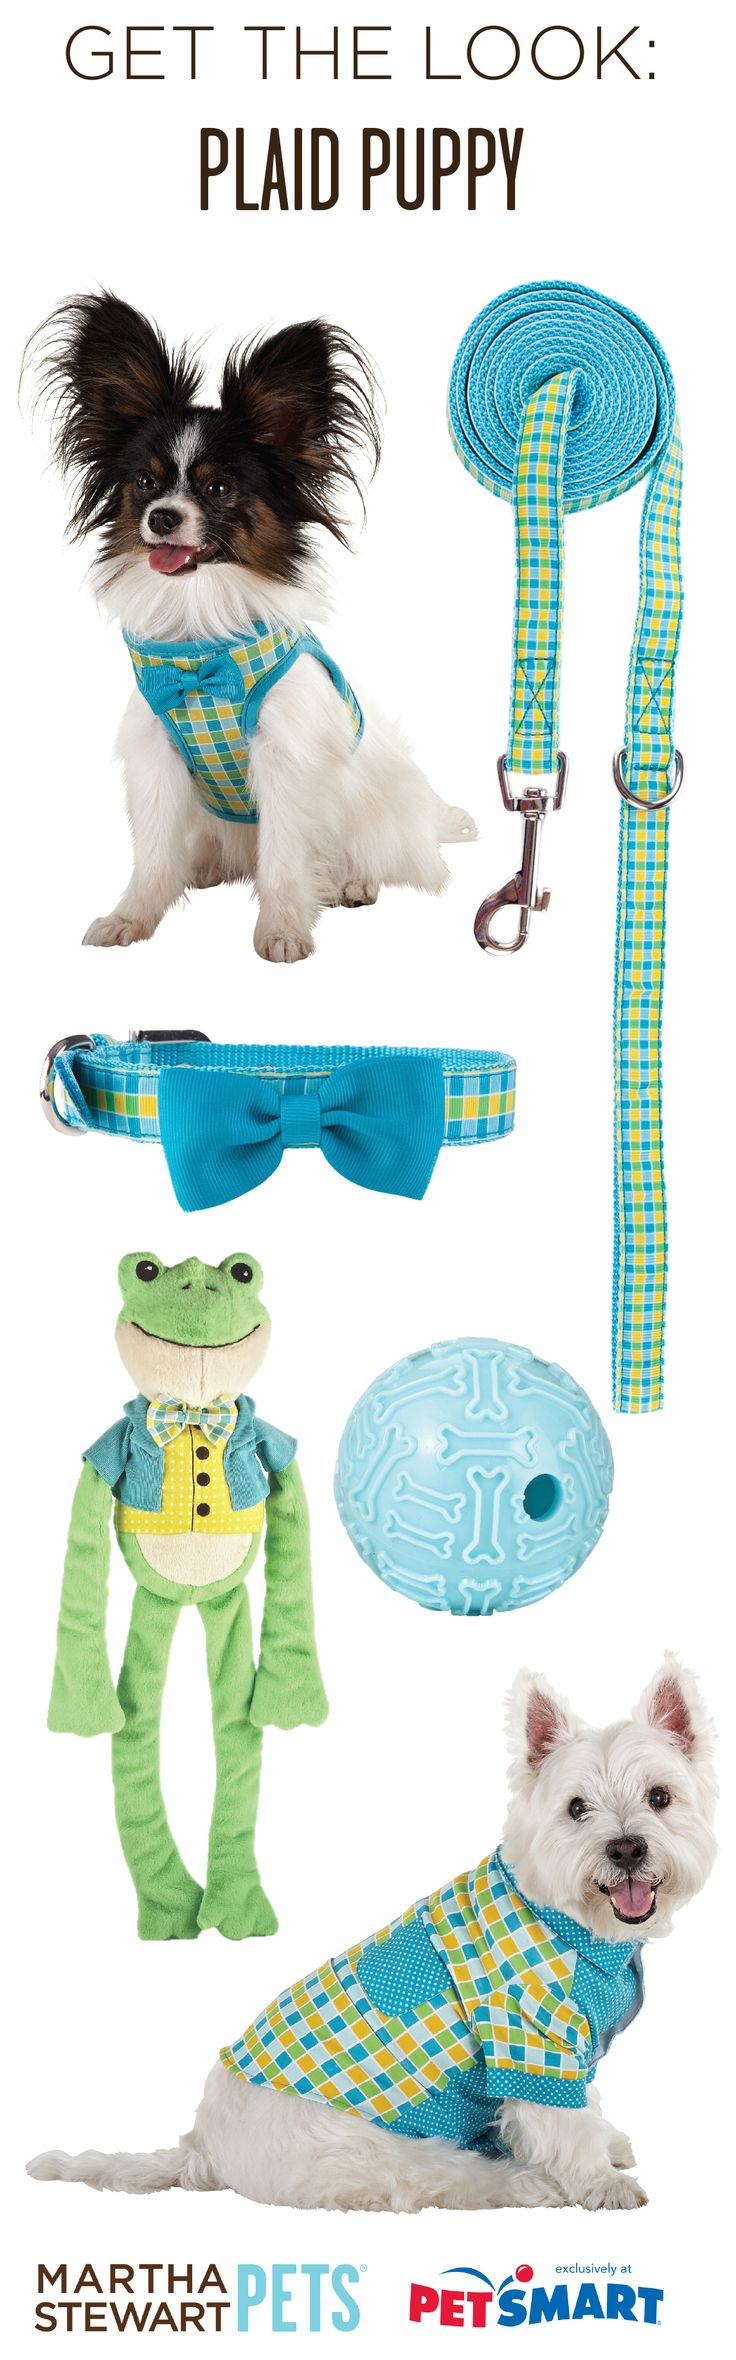 Get The Look: Plaid Puppy: Cat, Dogs, Martha Stewart Pet